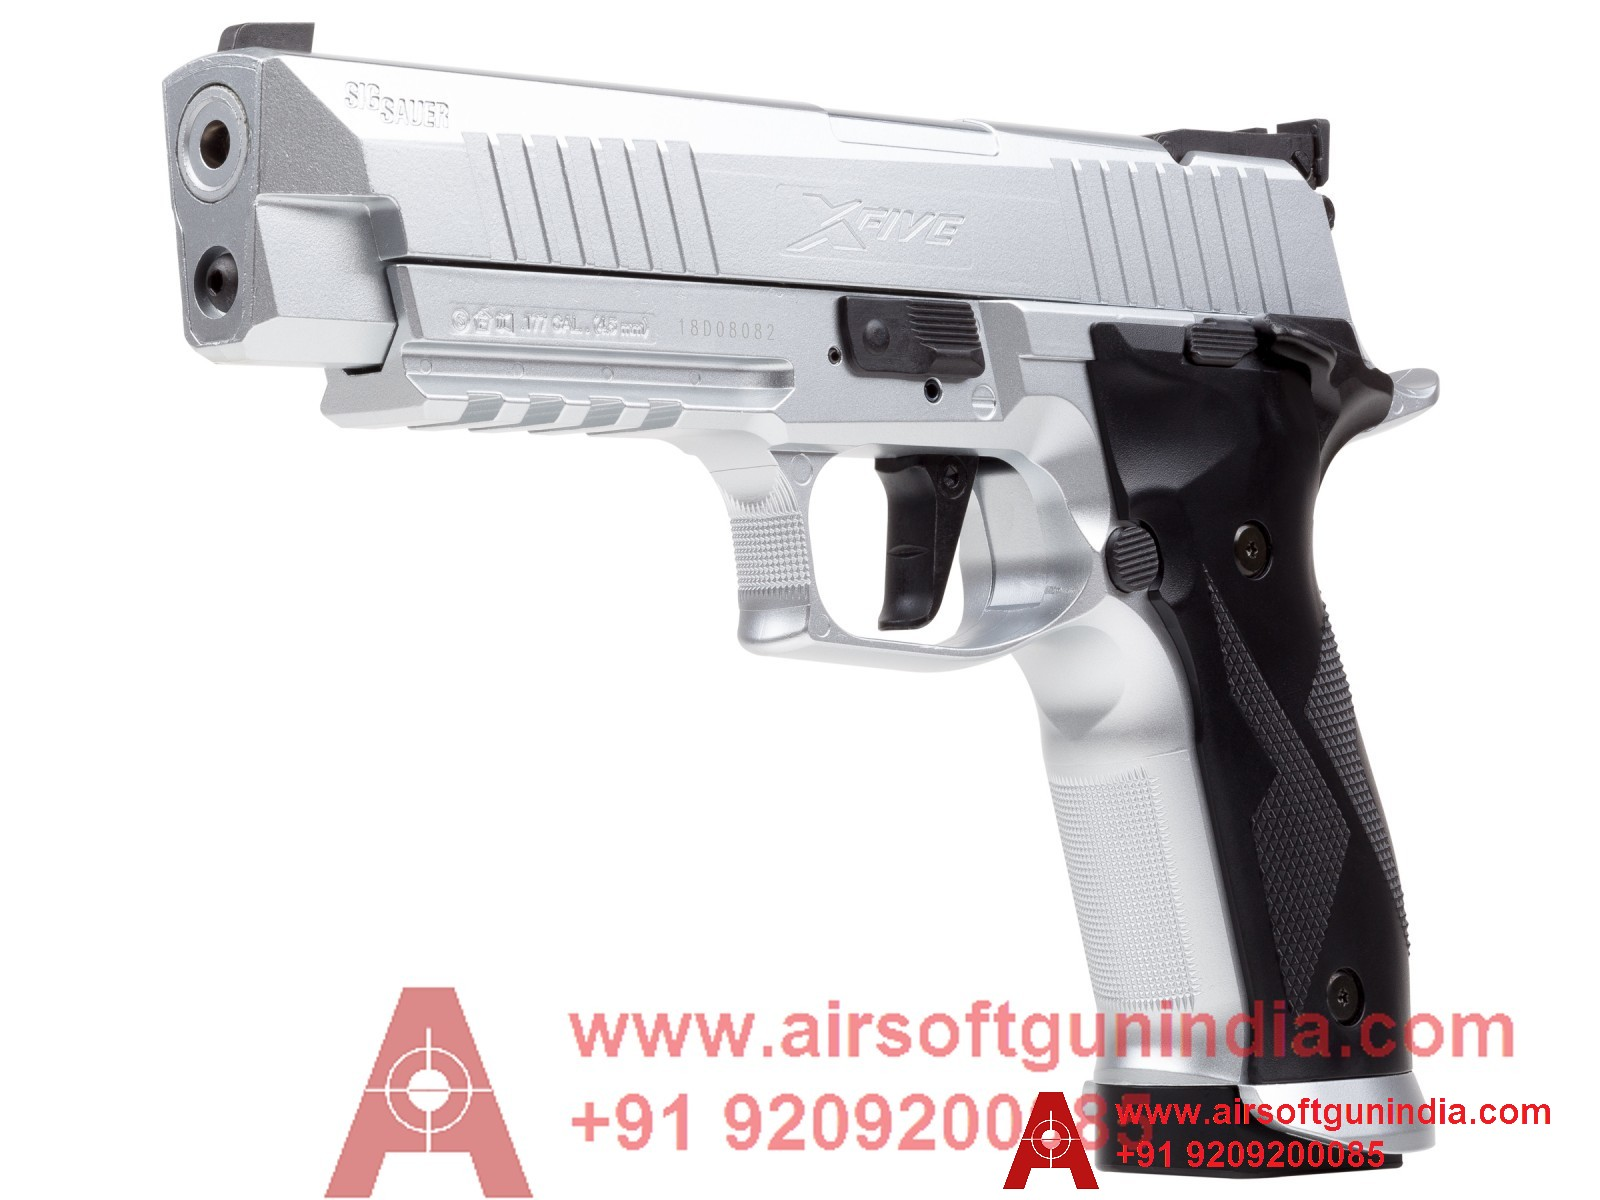 Imported Co2 Air Pistol In India